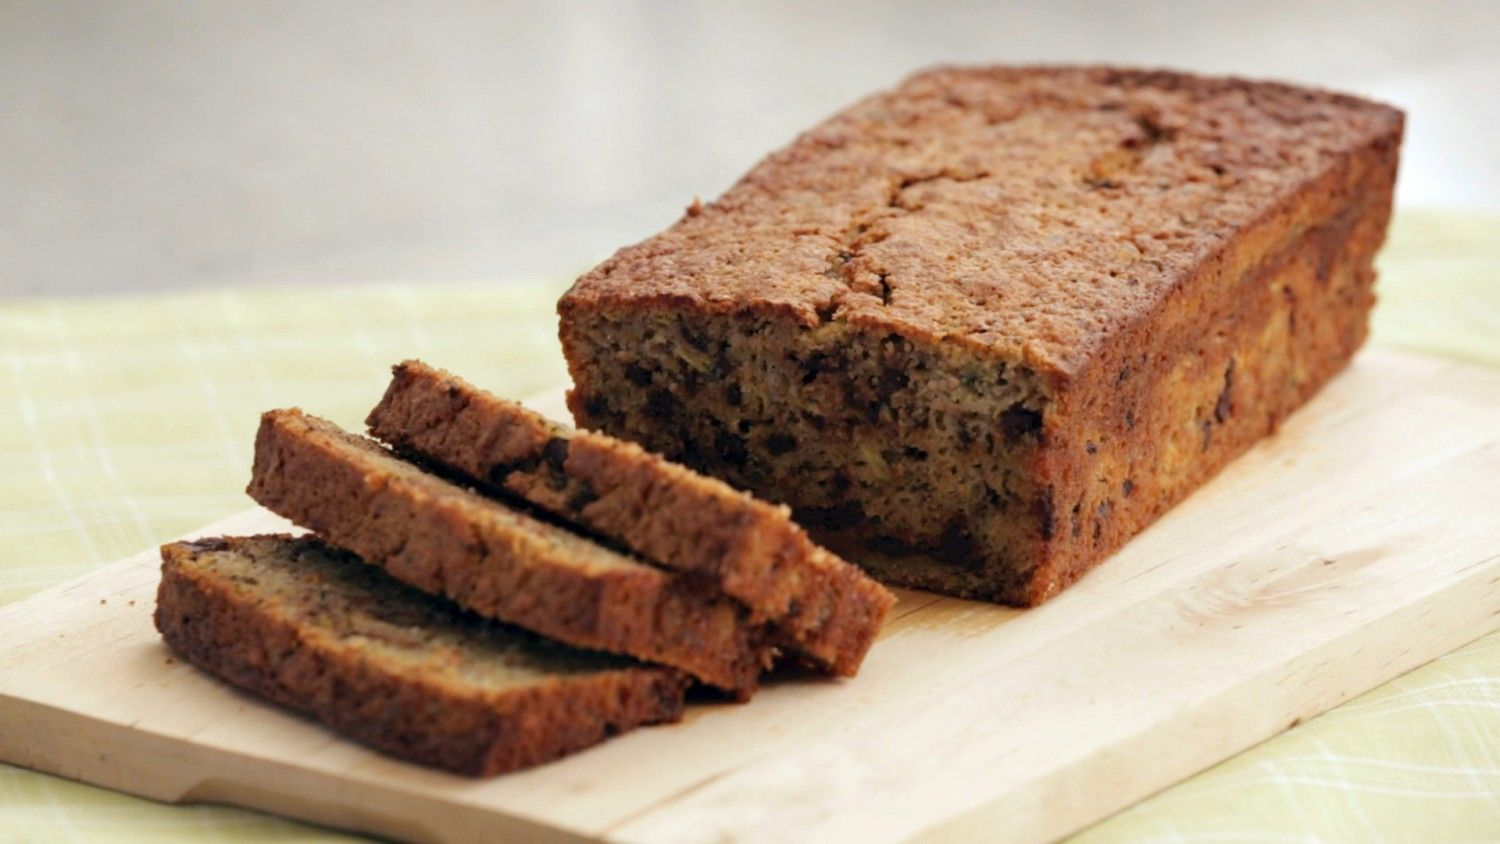 Spelt flour, zucchini, applesauce, and the addition of some chocolate chips for good measure might seem like an unlikely combination, but I guarantee you're going to love the results once you've tasted this unbelievably moist and delicious update on ordinary zucchini bread.